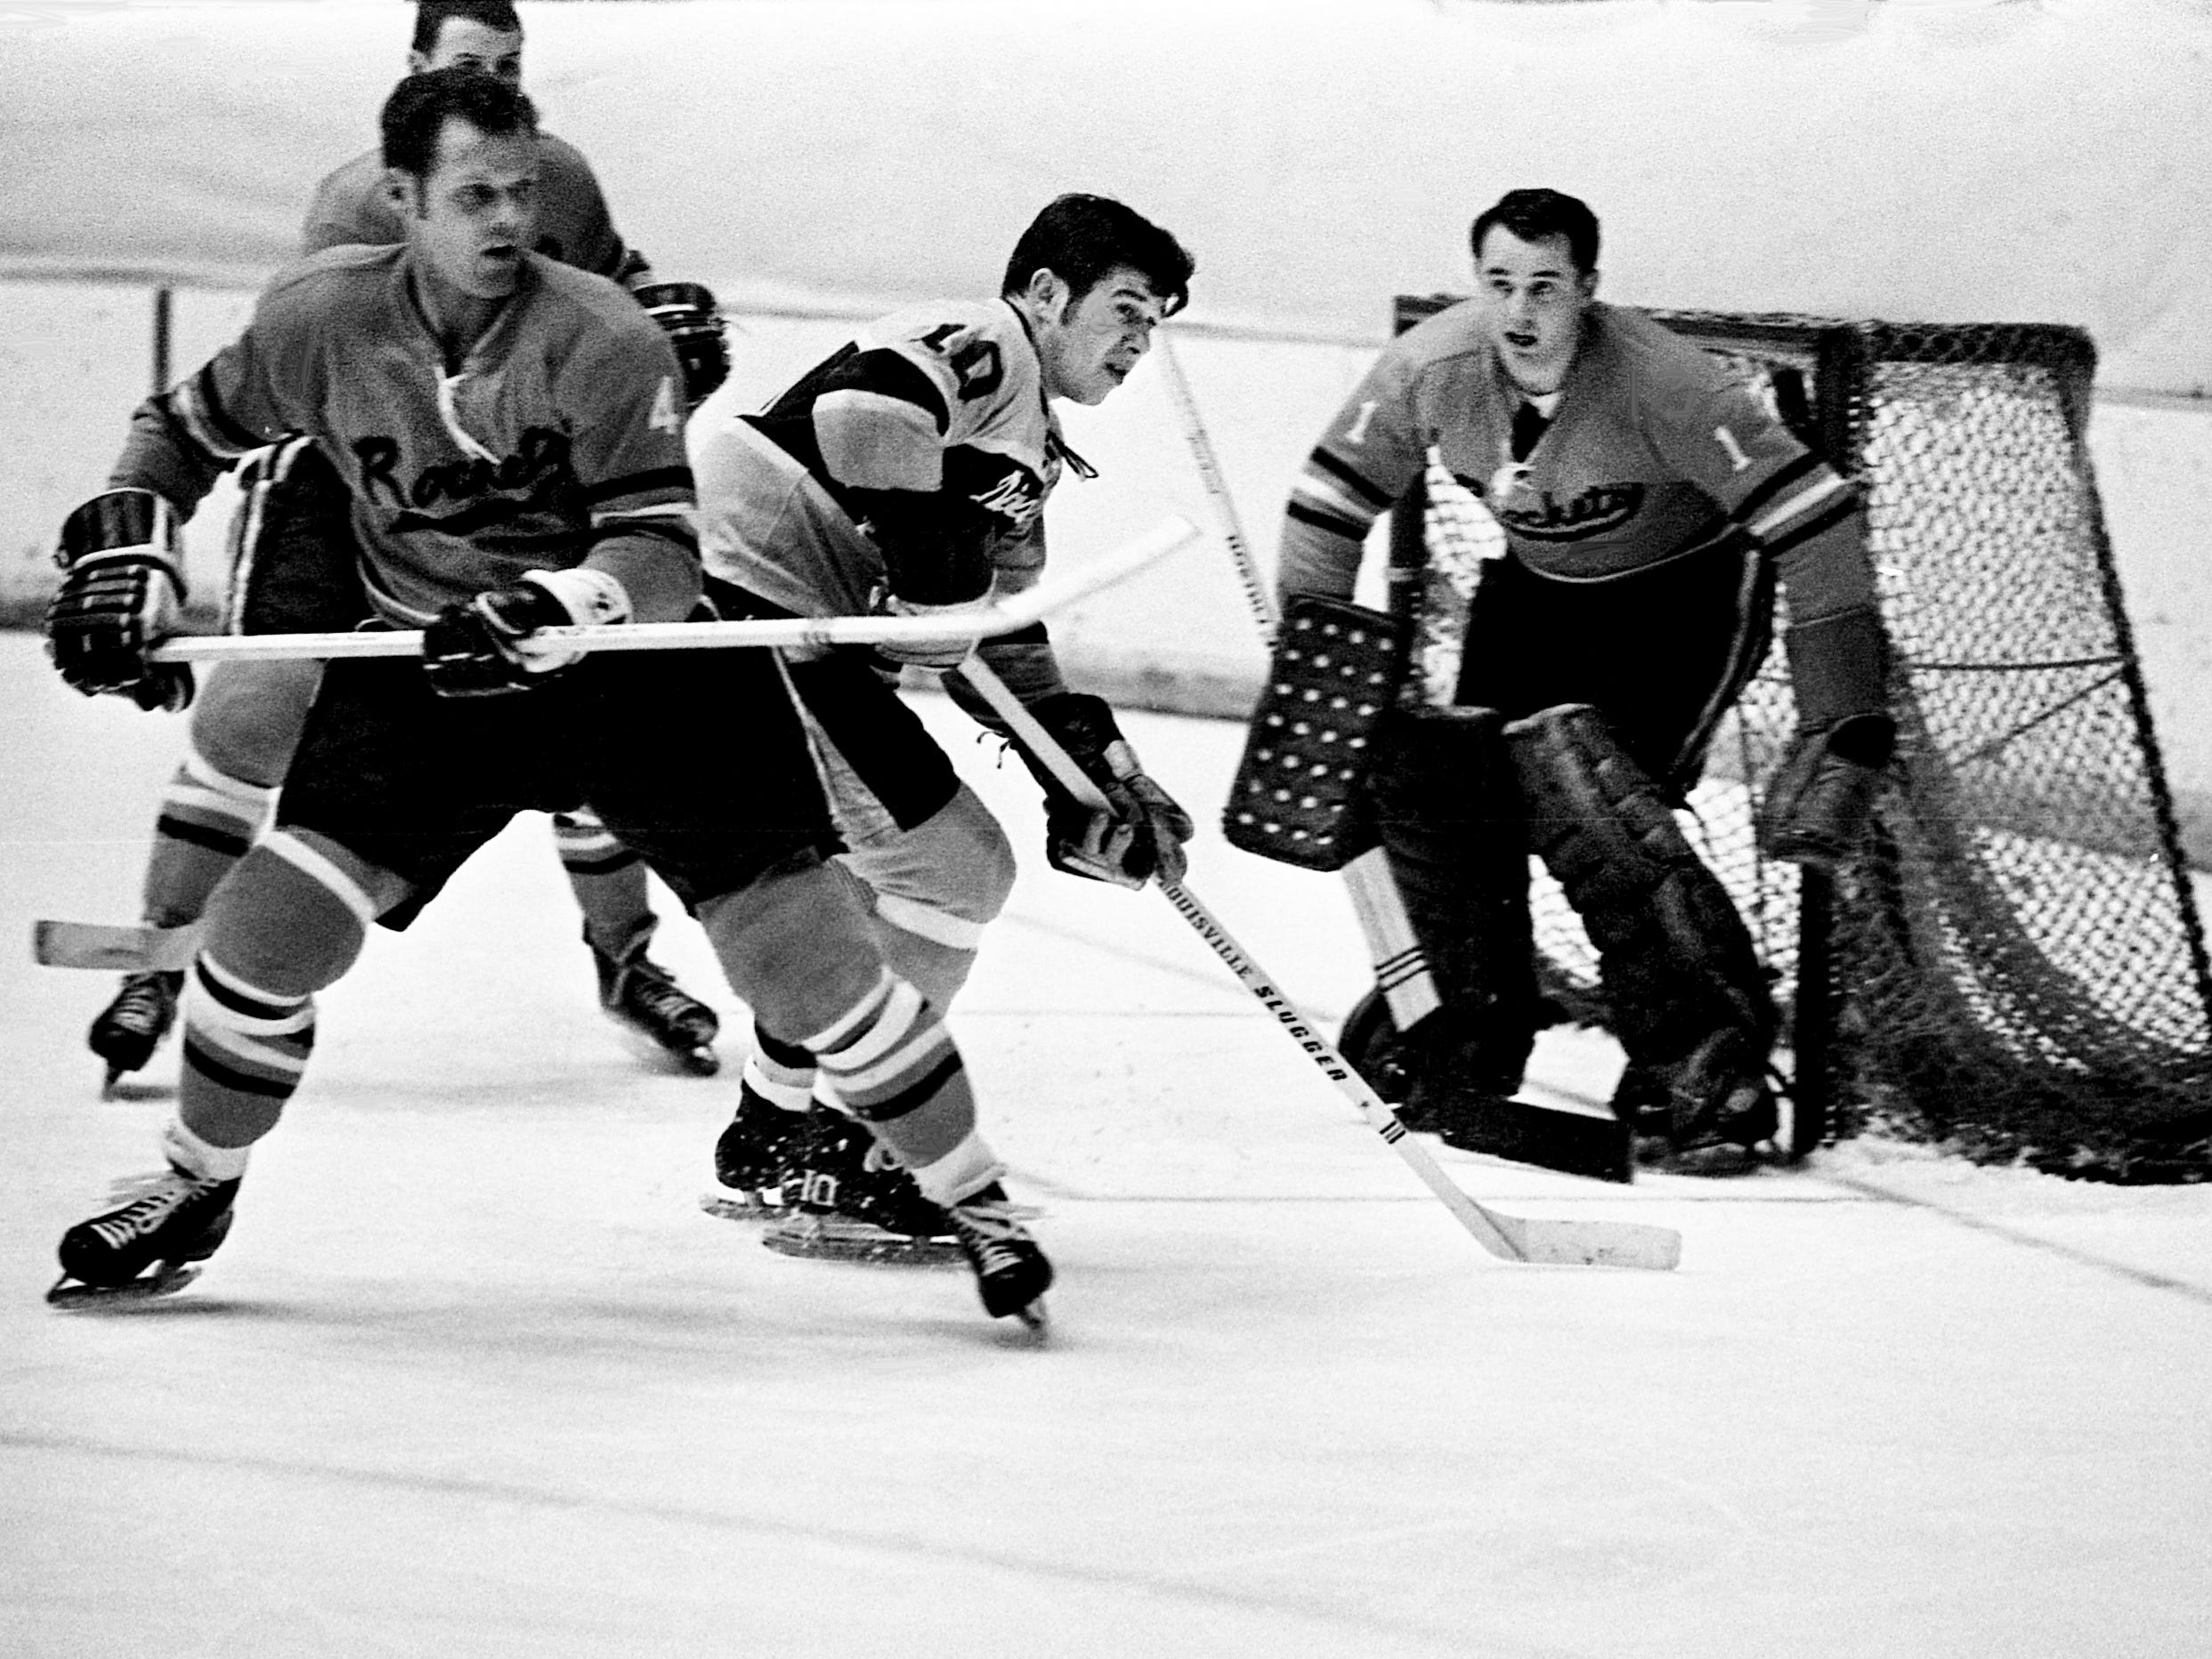 Nashville Dixie Flyers winger Andre Lajeunesse (10) positions himself in the middle of a trio of defense from the Jacksonville Rockets, including defenseman Stan Melanchuck (4) and goalie Harrison Gray. The Flyers won 8-3 before a Christmas Day crowd of 2,173 at Municipal Auditorium on Dec. 25, 1968.